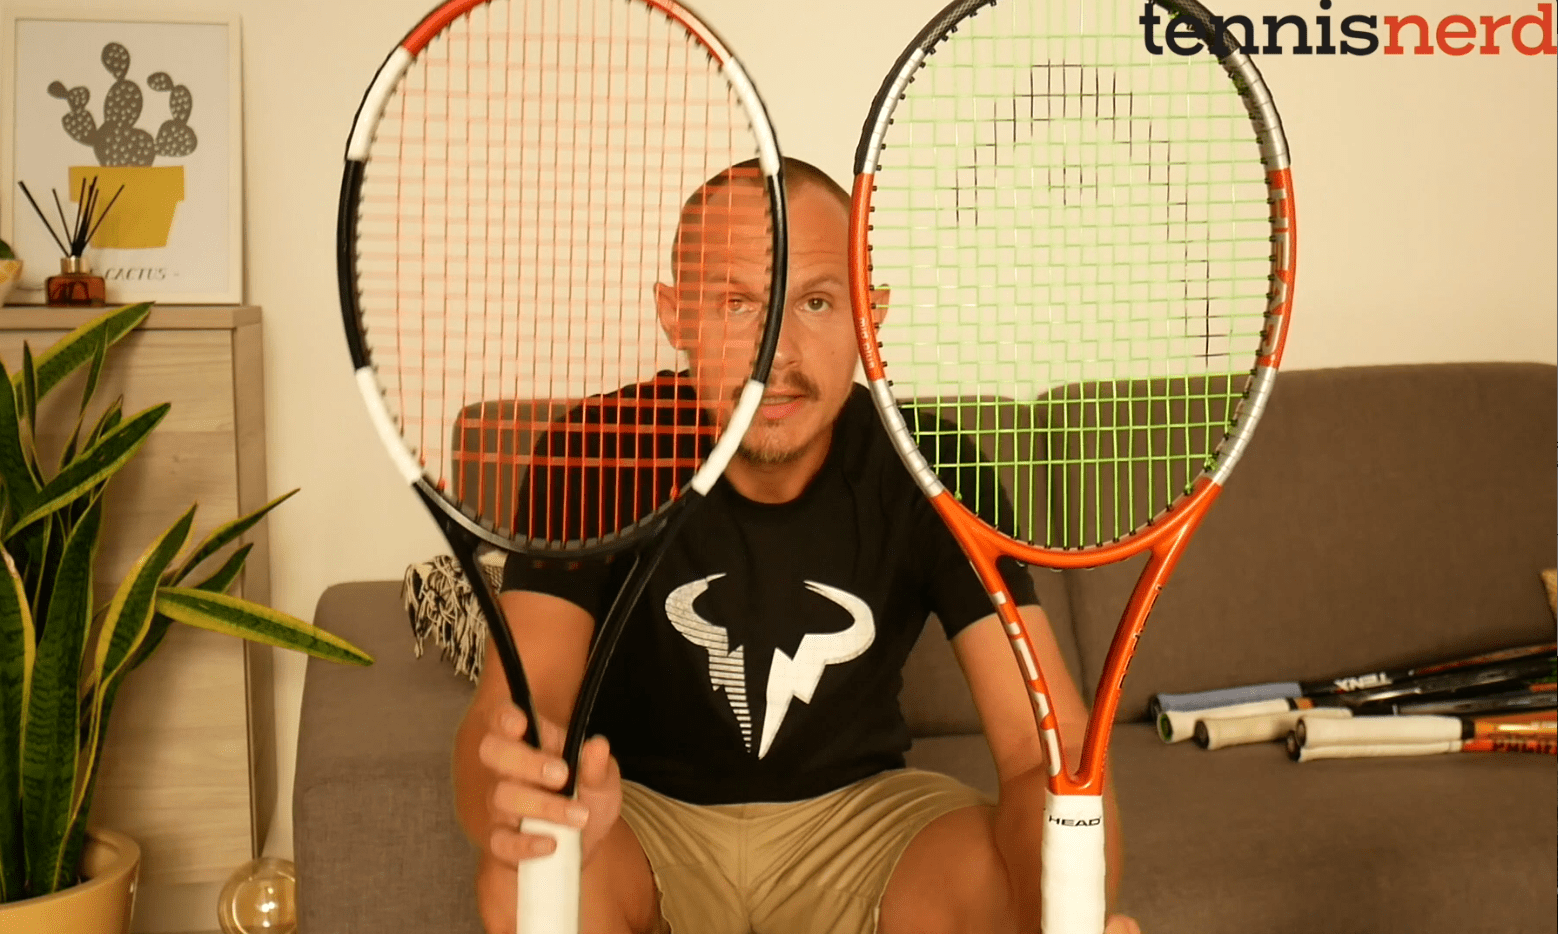 Different types of racquets